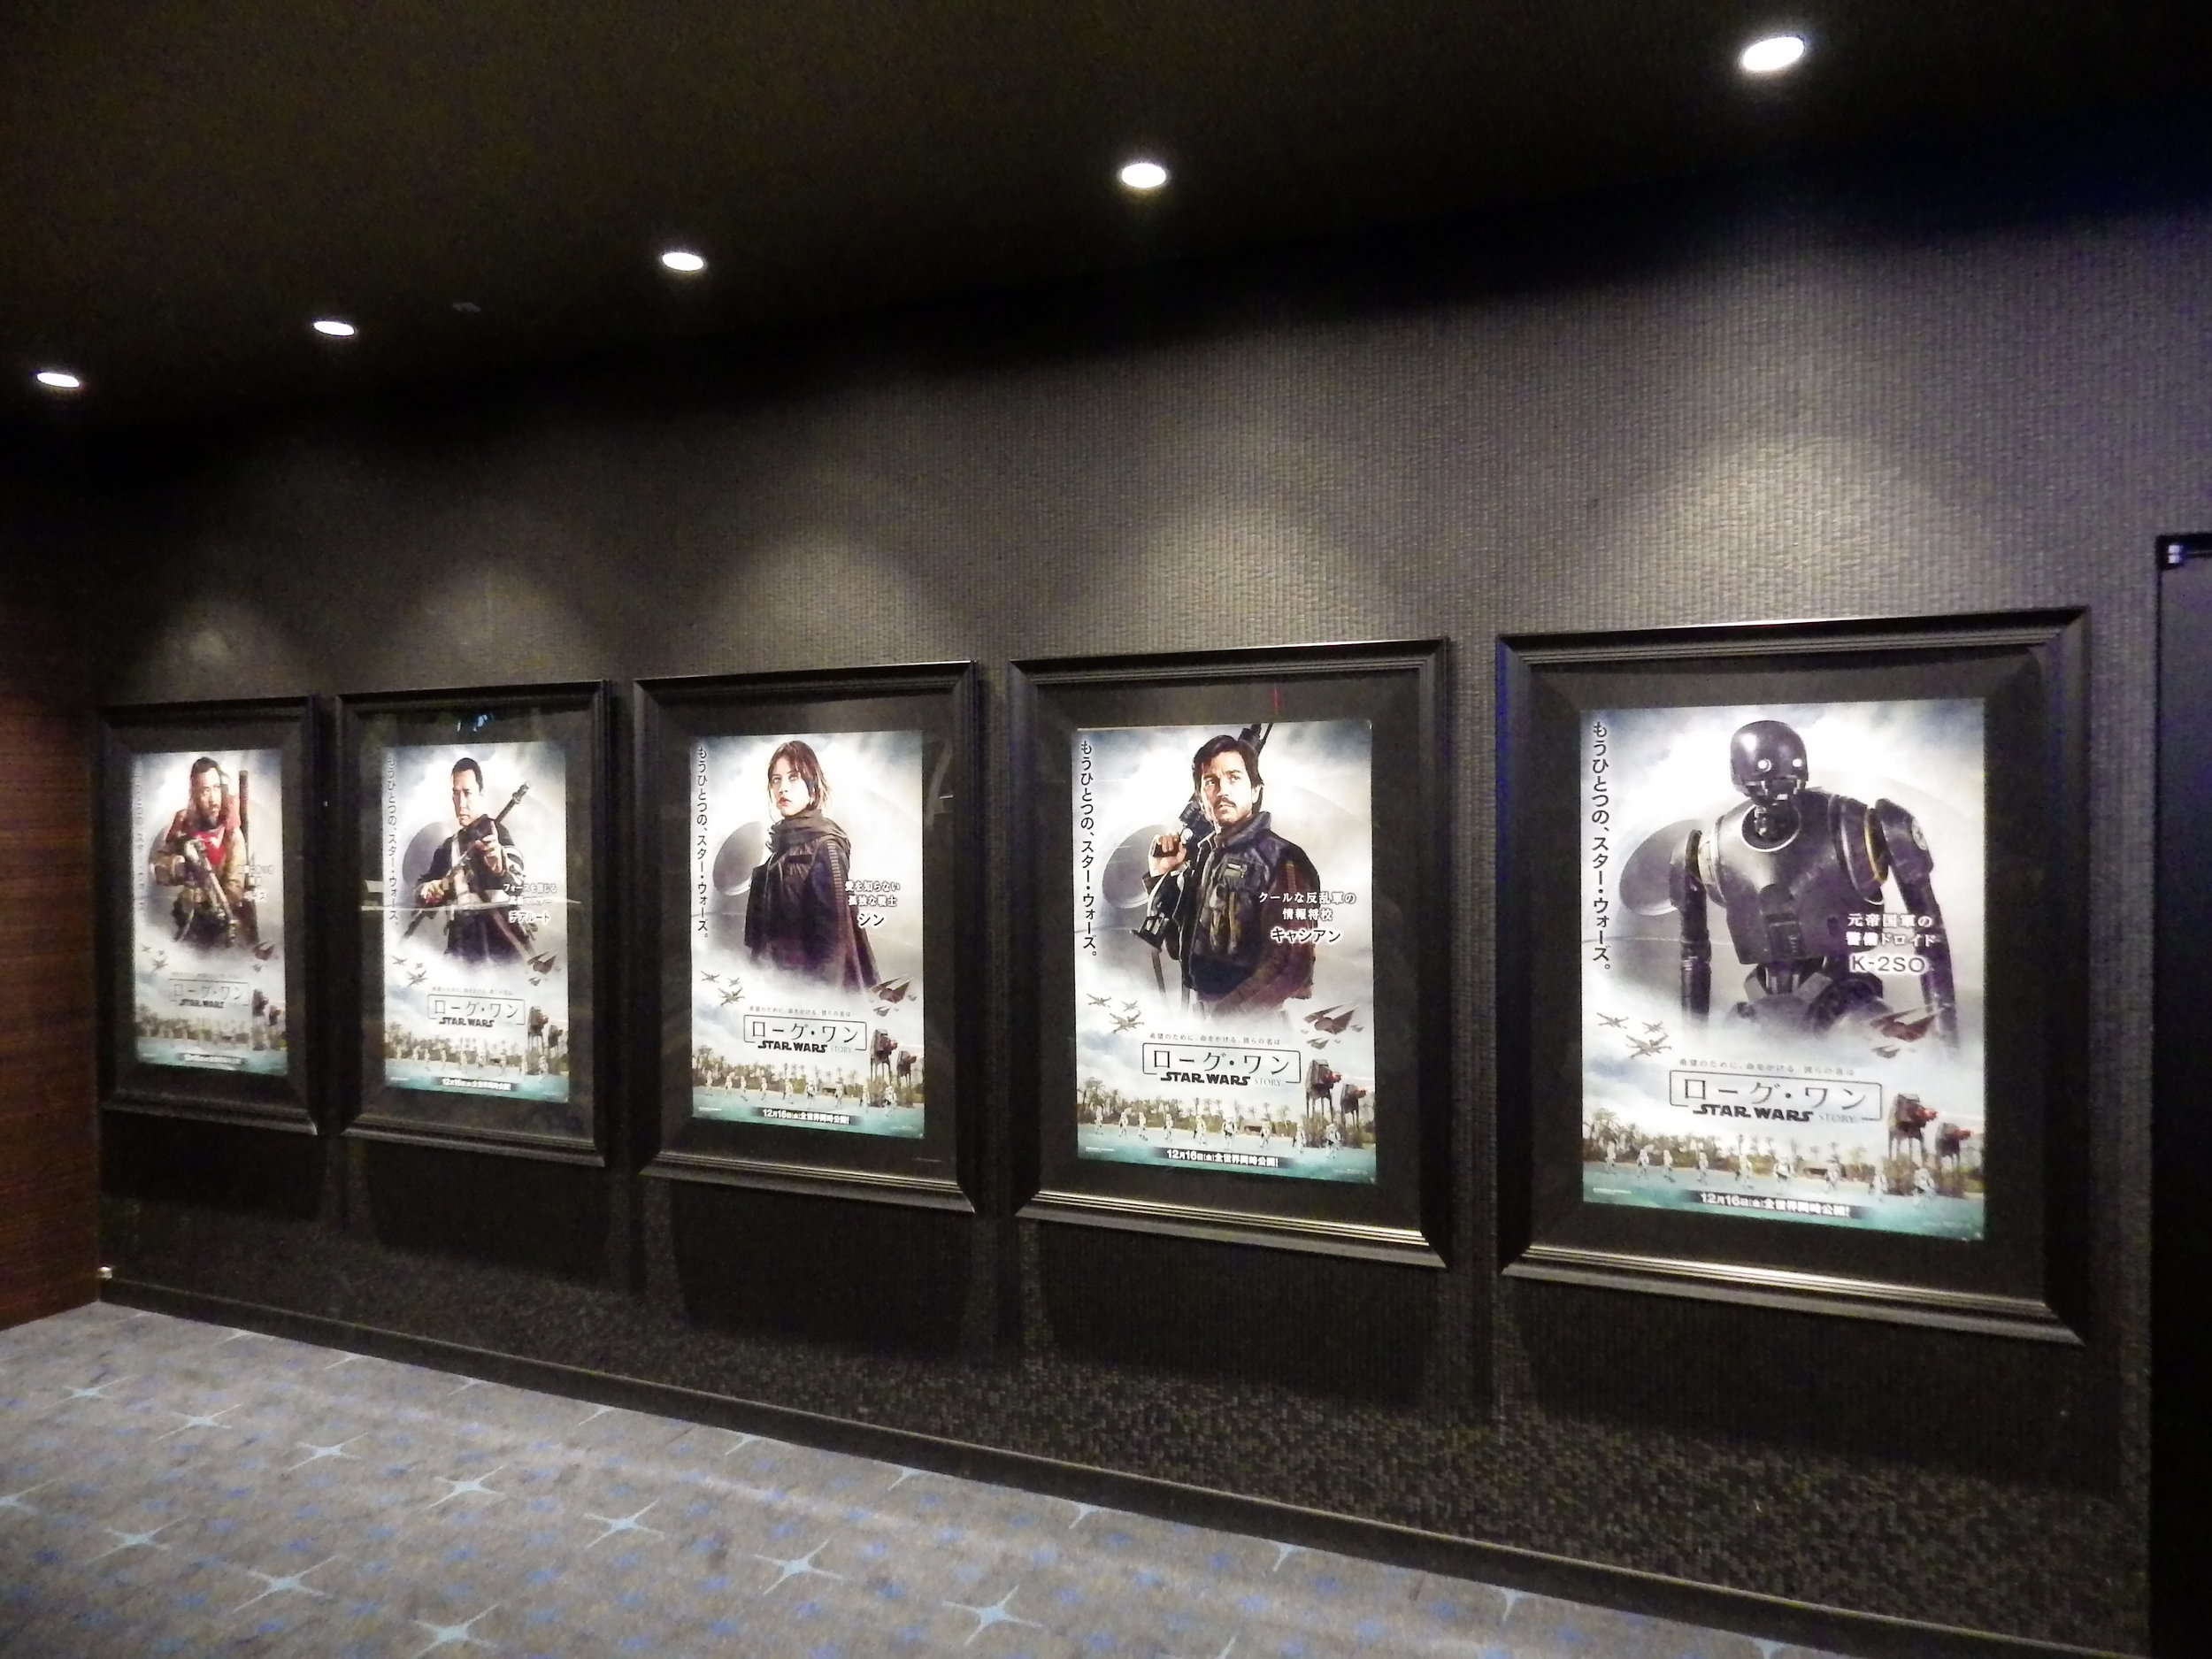 Rogue One  character posters on the wall of the theater lobby.